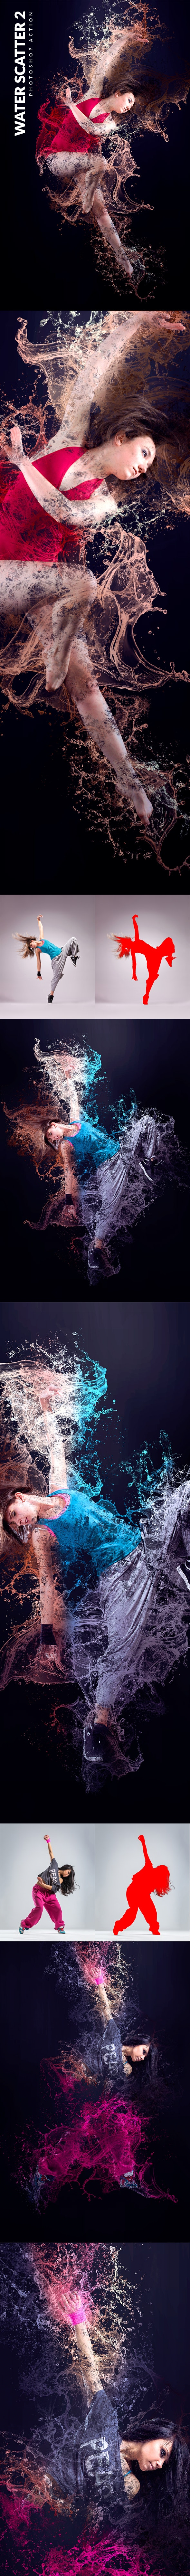 Water Scatter 2 Photoshop Action - Photo Effects Actions